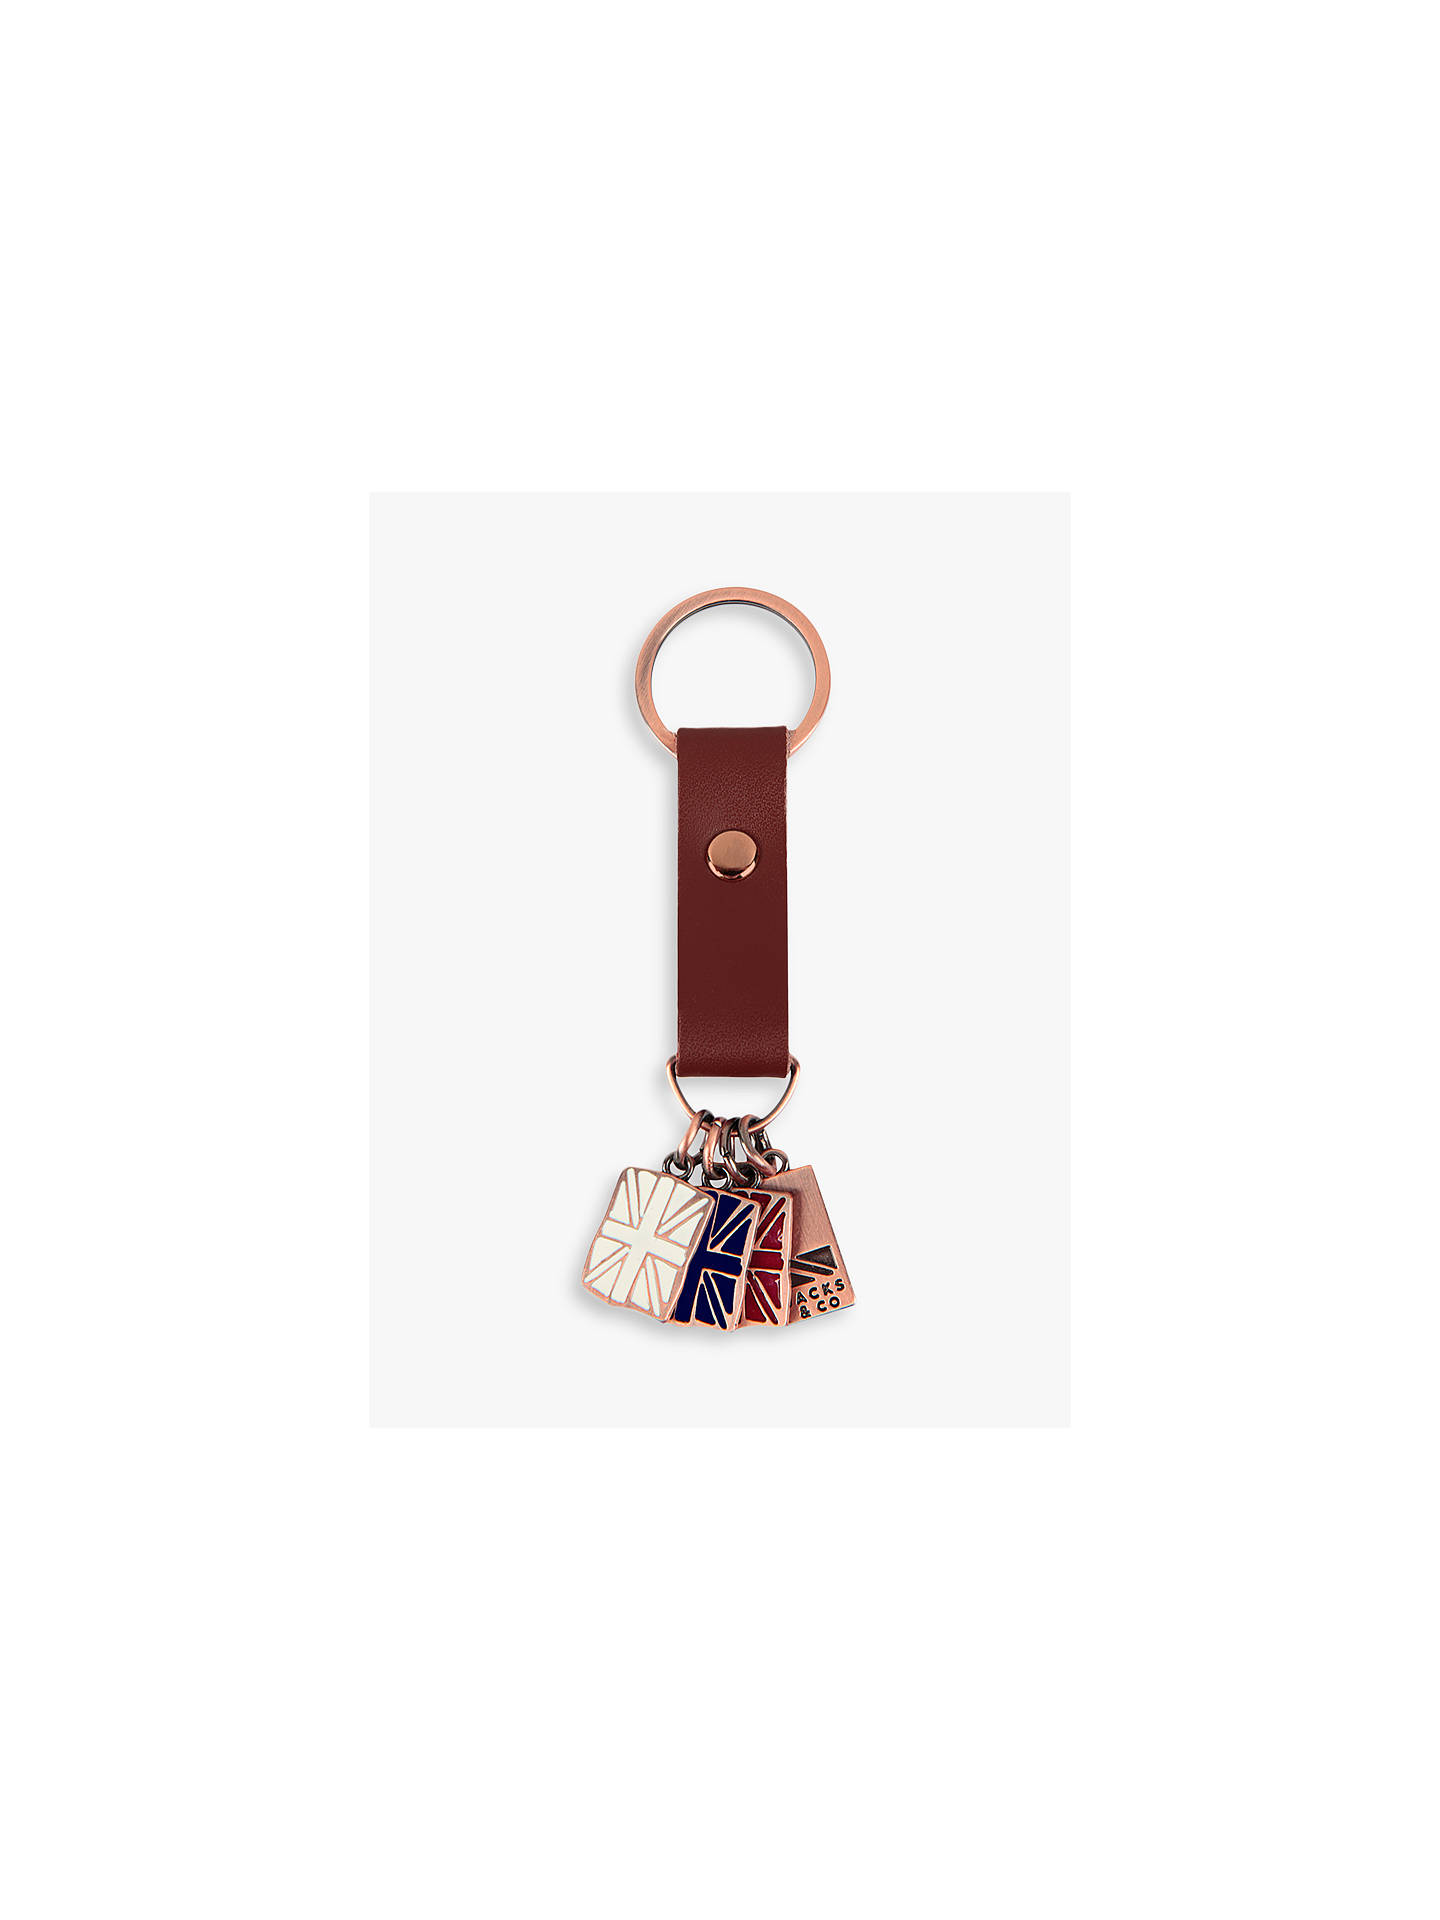 BuyJacks & Co Great Britain Keyring, Multi Online at johnlewis.com